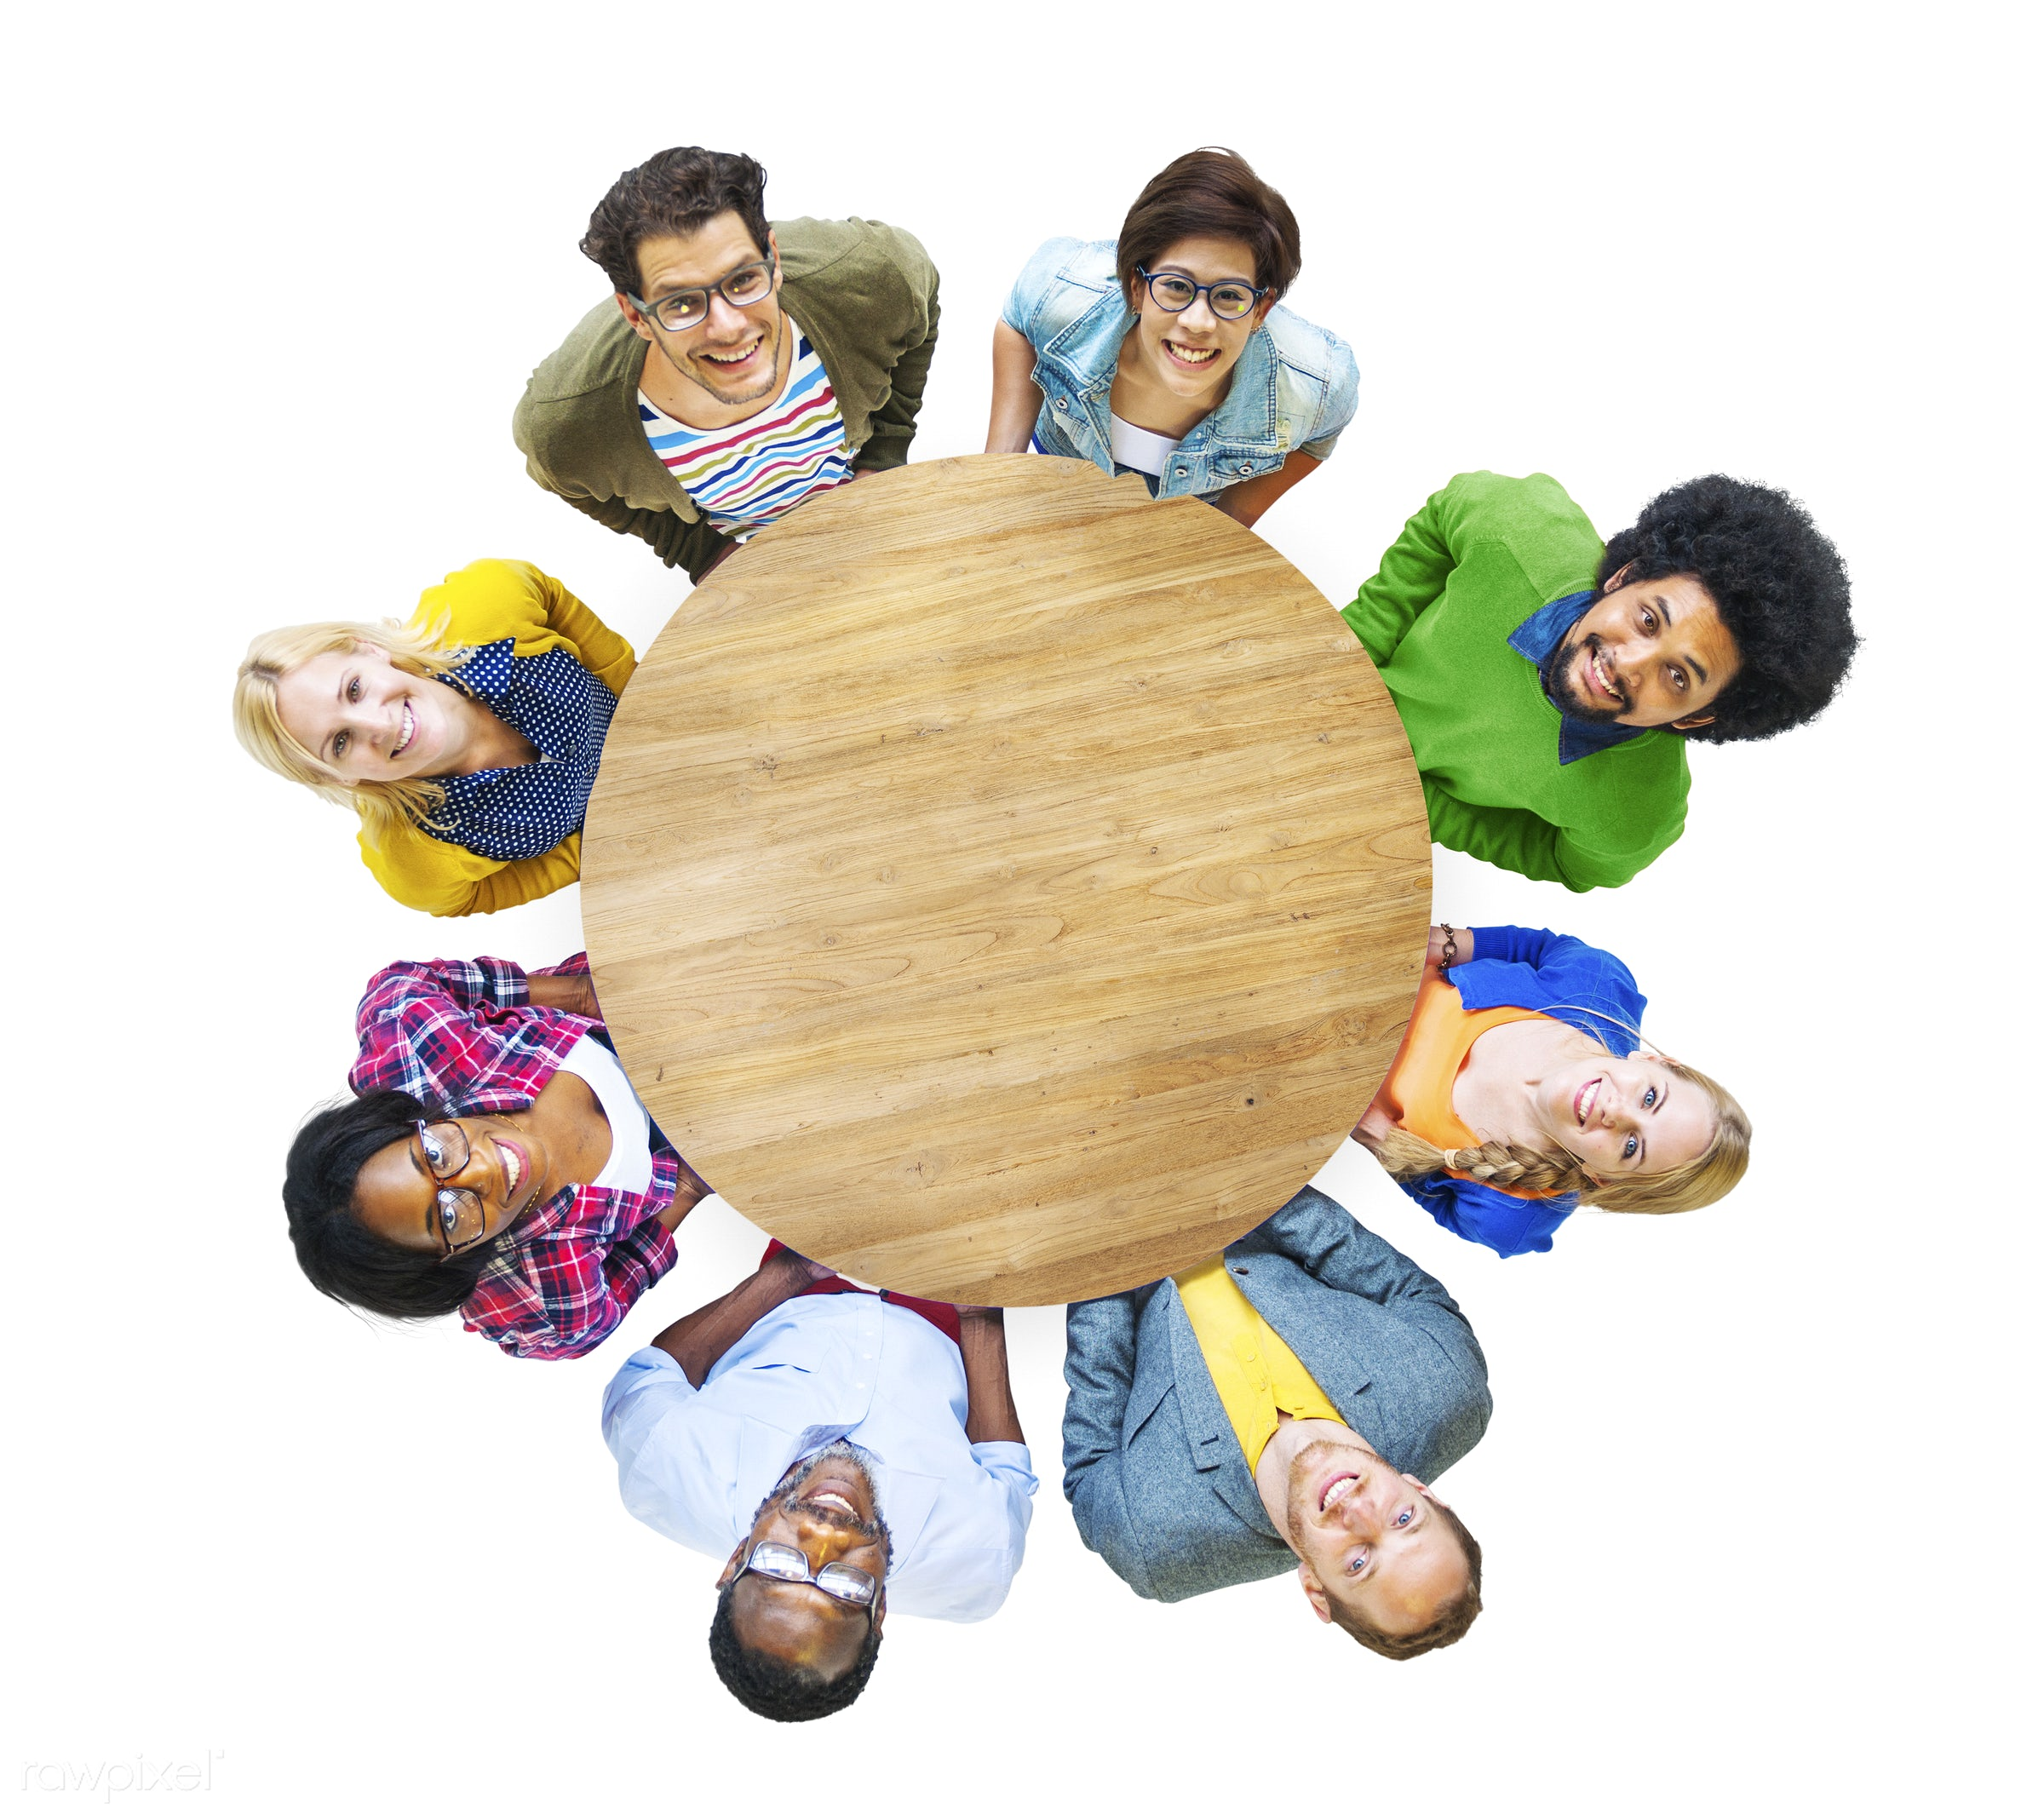 aerial view, african descent, asian ethnicity, casual, cheerful, circle, color, colorful, community, conference, connection...